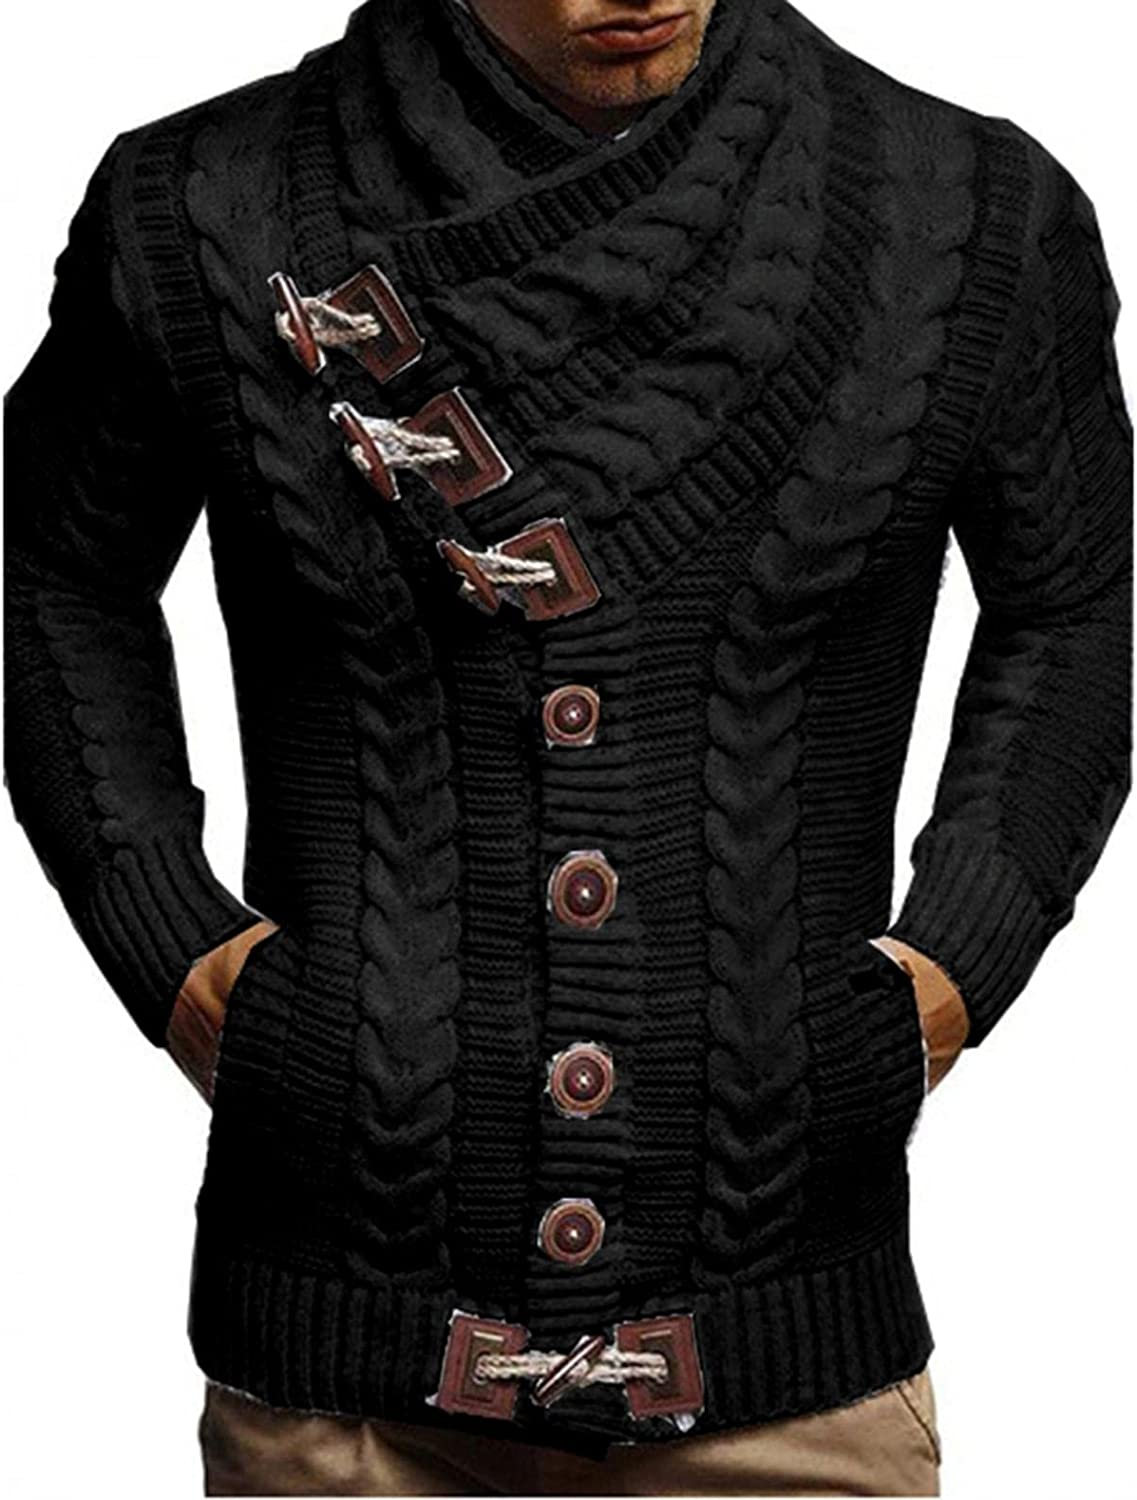 WUAI-Men Slim Fit Turtleneck Sweater Casual Twisted Knitted Designer Shawl Collar Pullover Thermal Jumper Tops